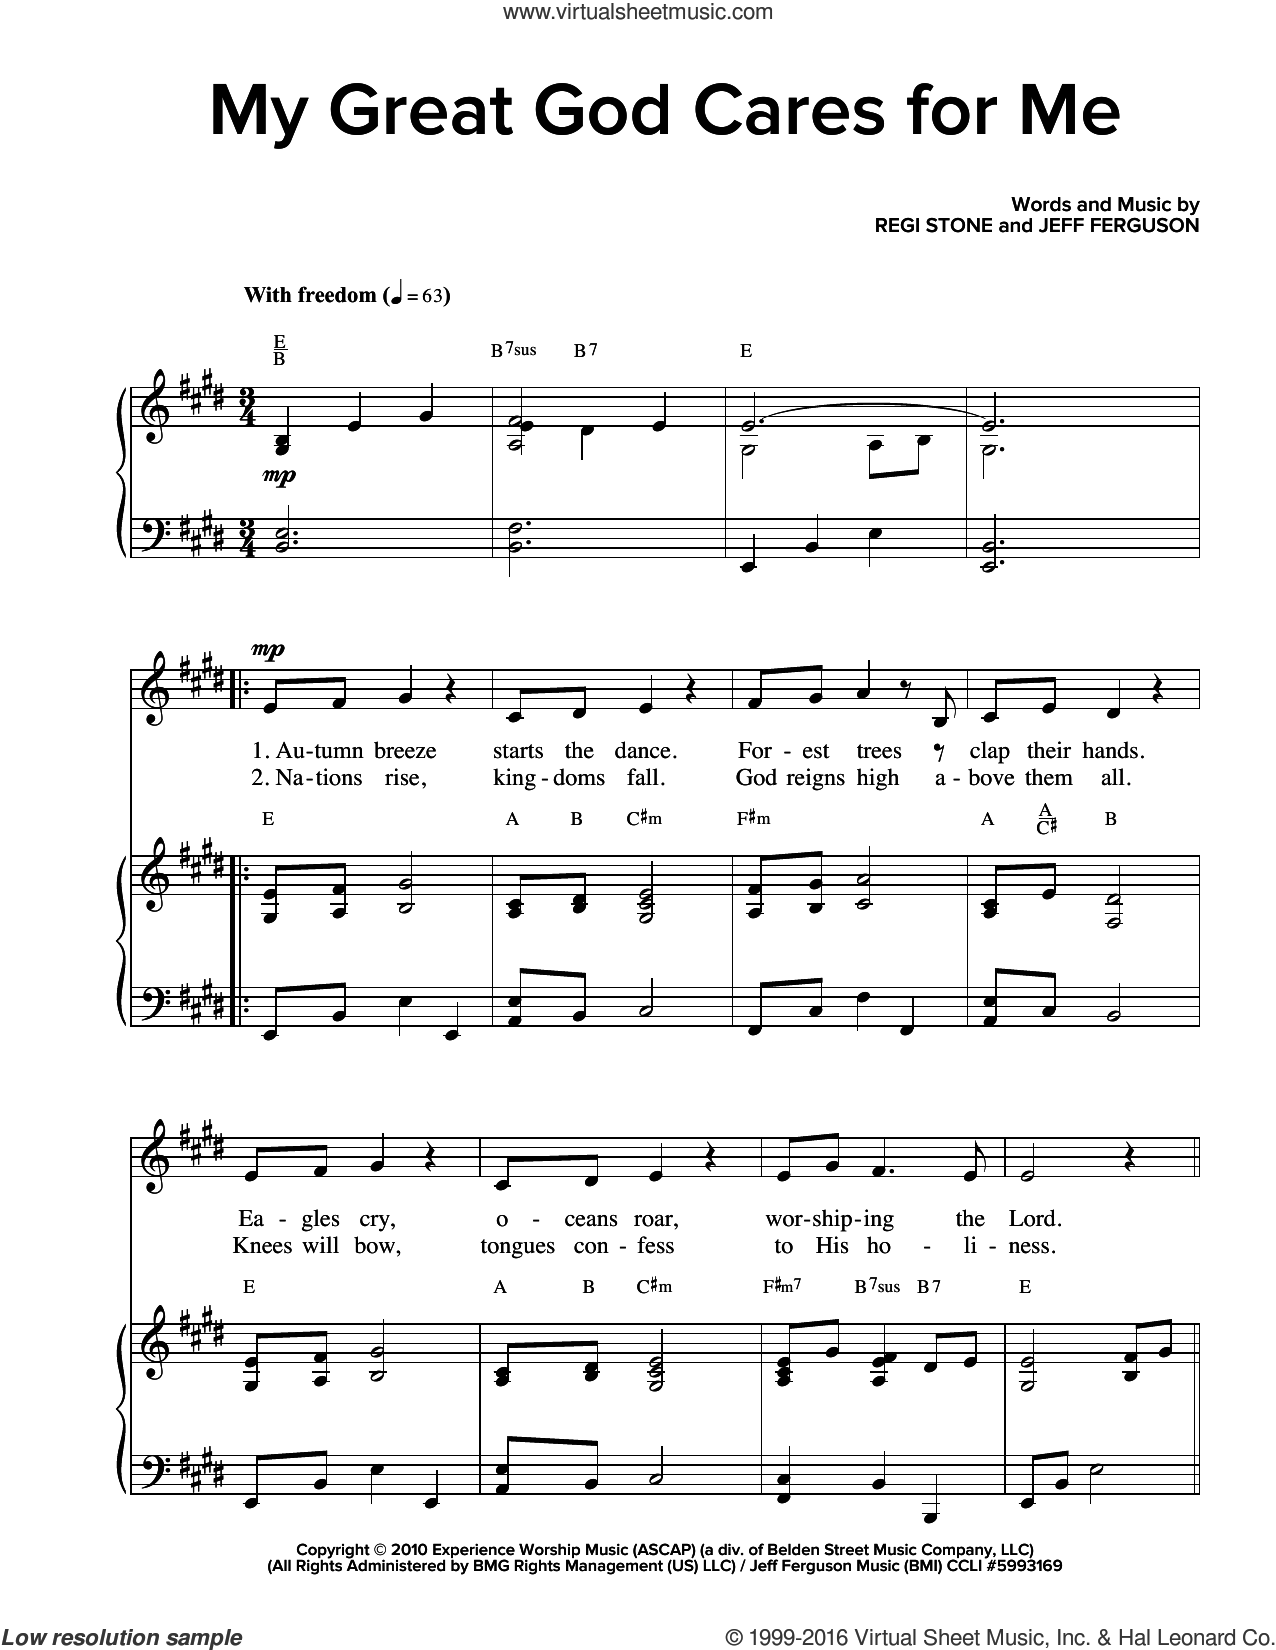 My Great God Cares For Me sheet music for voice and piano , Jeff Ferguson and Regi Stone, intermediate skill level